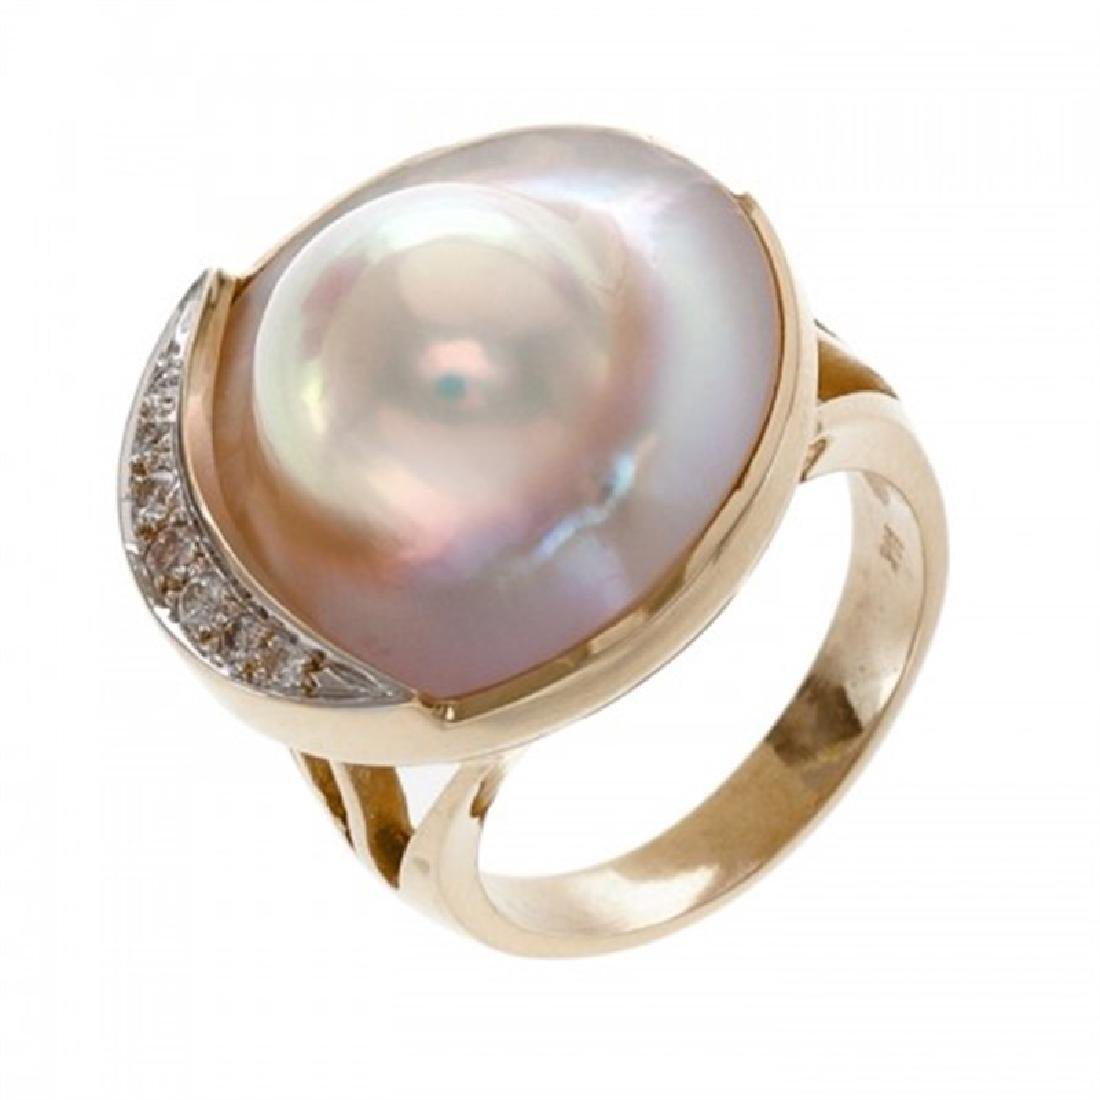 19.5-20.0mm Mabe Blister Pearl Ring with Diamonds